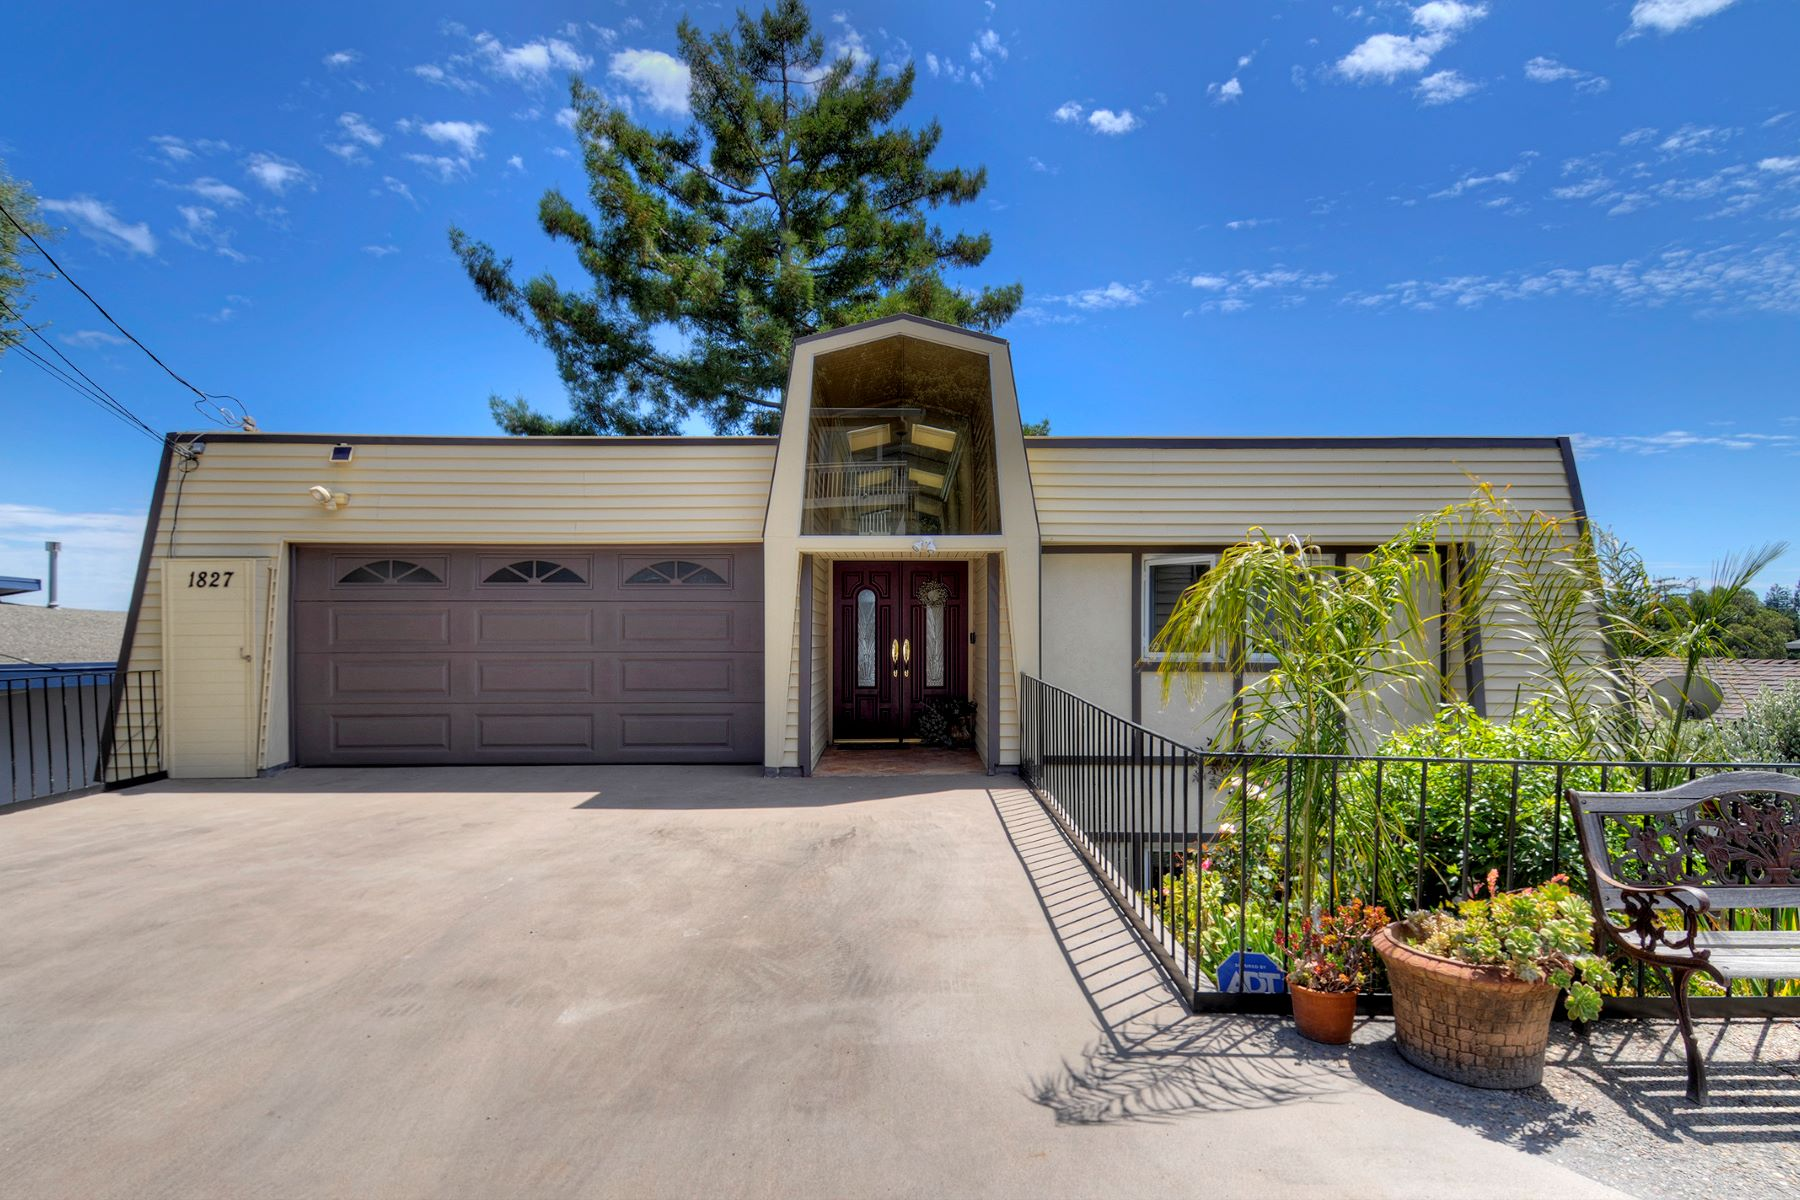 Single Family Homes for Active at Unique Home with Spectacular Views 1827 Mezes Avenue Belmont, California 94002 United States